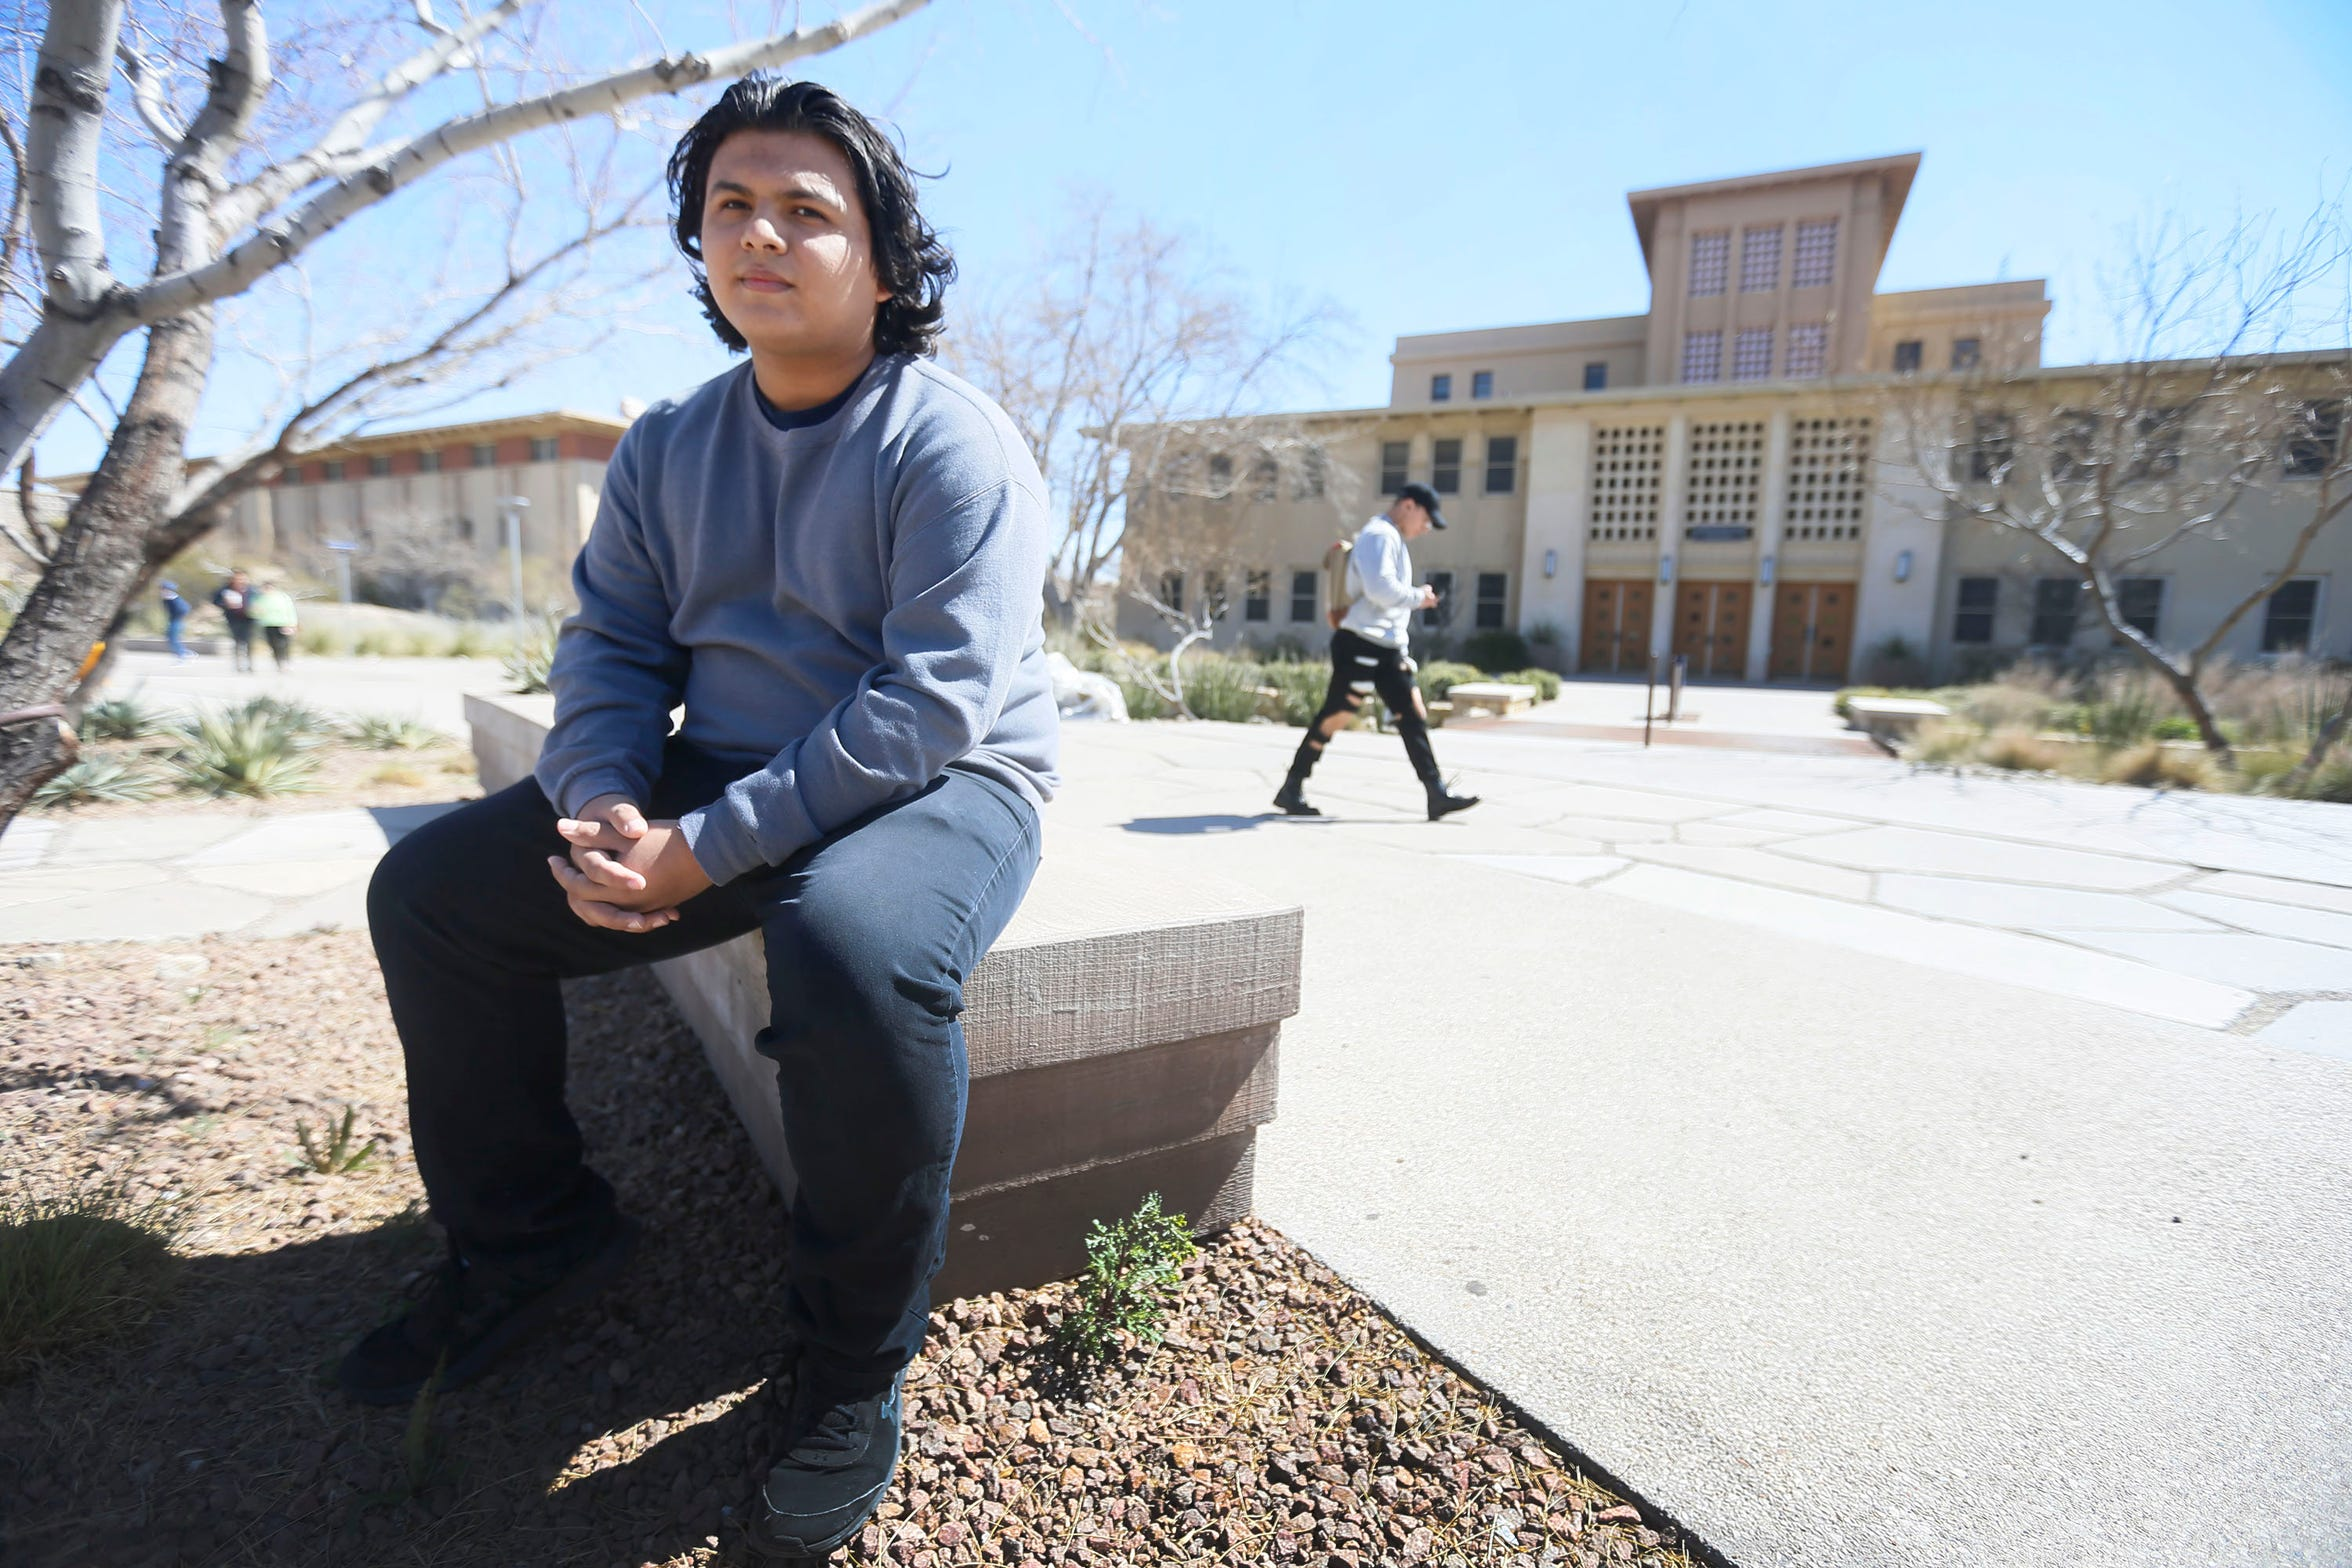 Steven Garza, a member of Texas Young Democrats, is shown Tuesday, Feb. 25, 2020, at the University of Texas at El Paso. In the 2018 general election, Garza had a problem voting. His ballot wasn't counted; he was told he had voted in the wrong precinct.